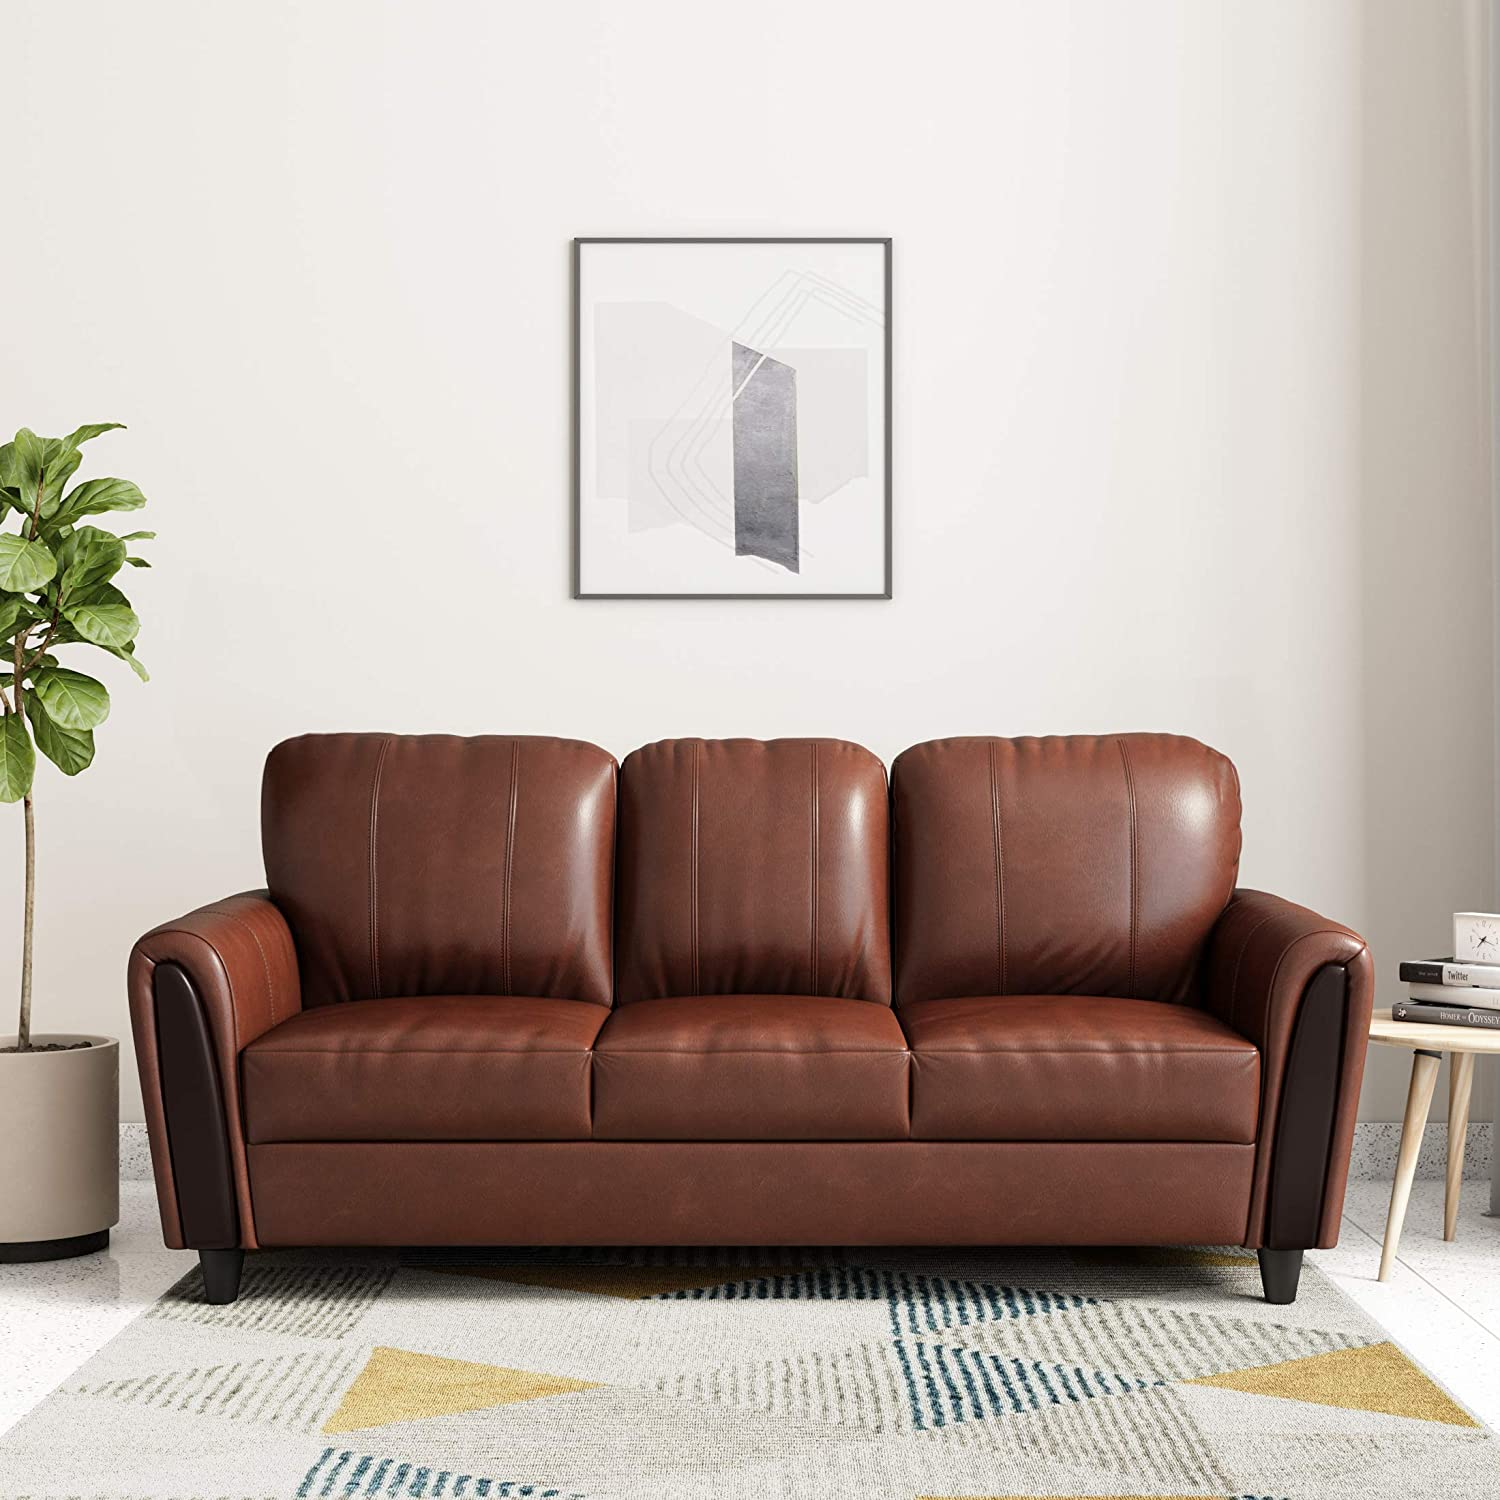 kolbor 3 seater sofa hometown  (Brown)